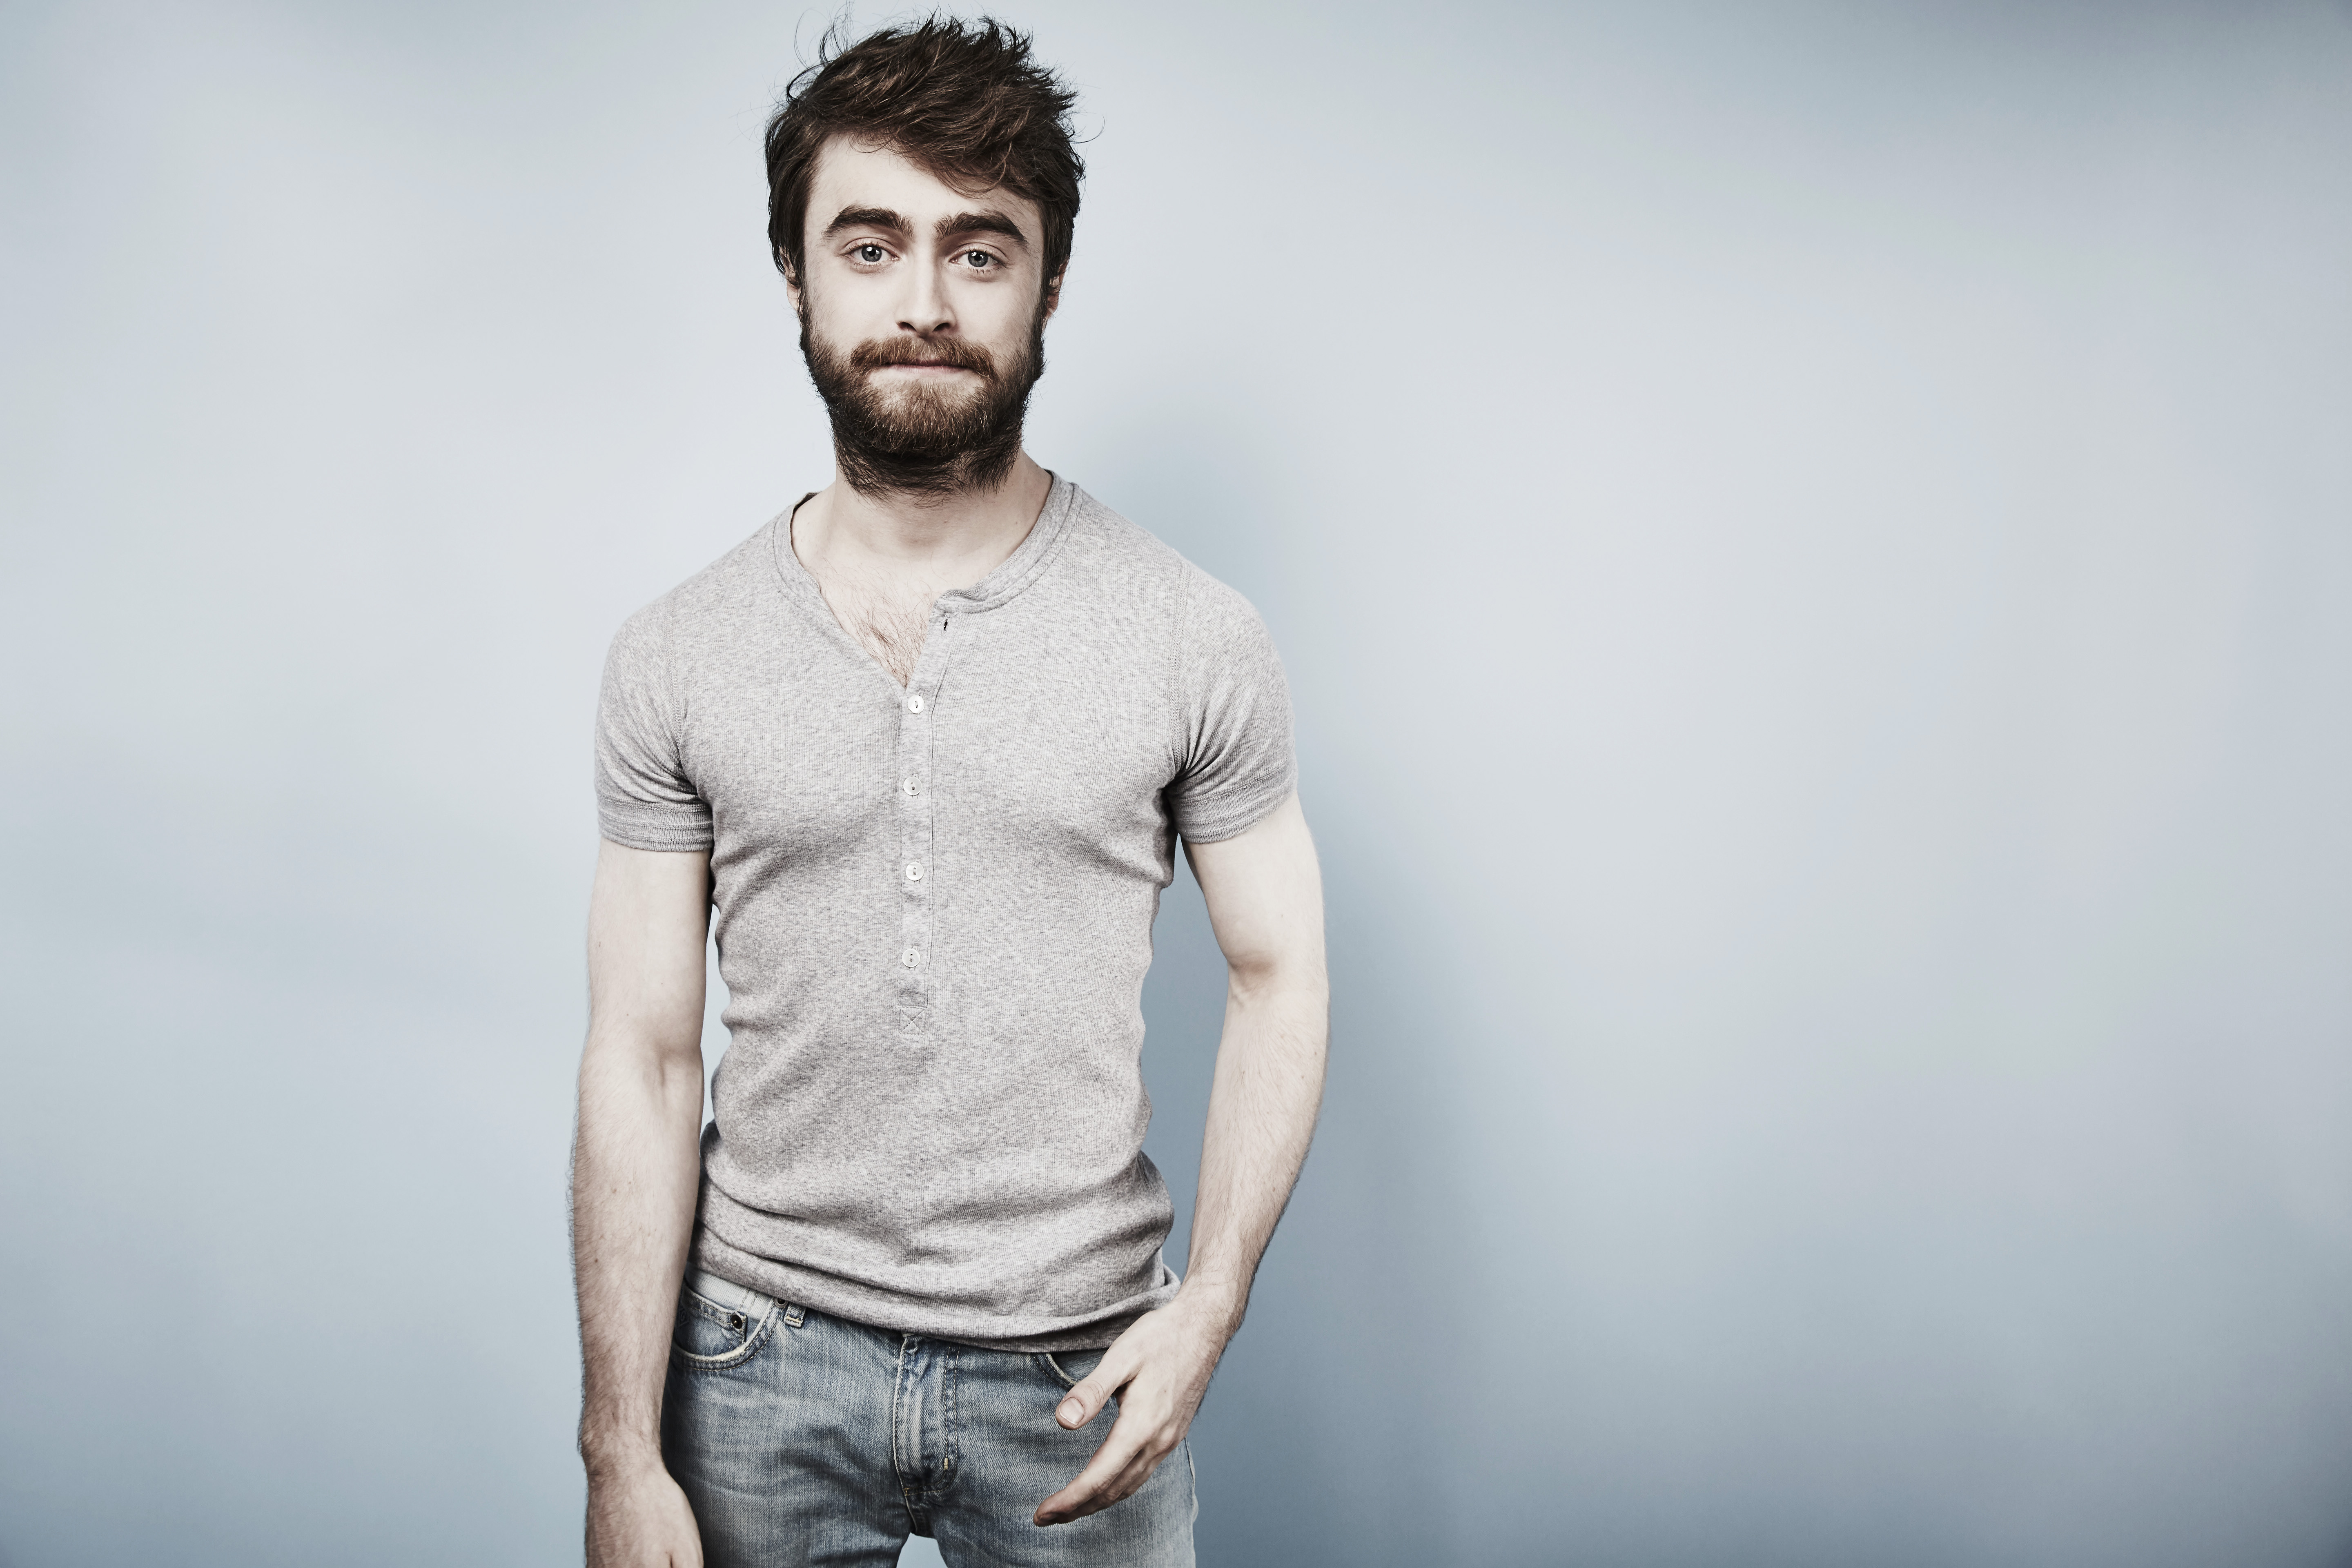 Actor Daniel Radcliffe poses for a portrait in San Diego on July 11, 2015.